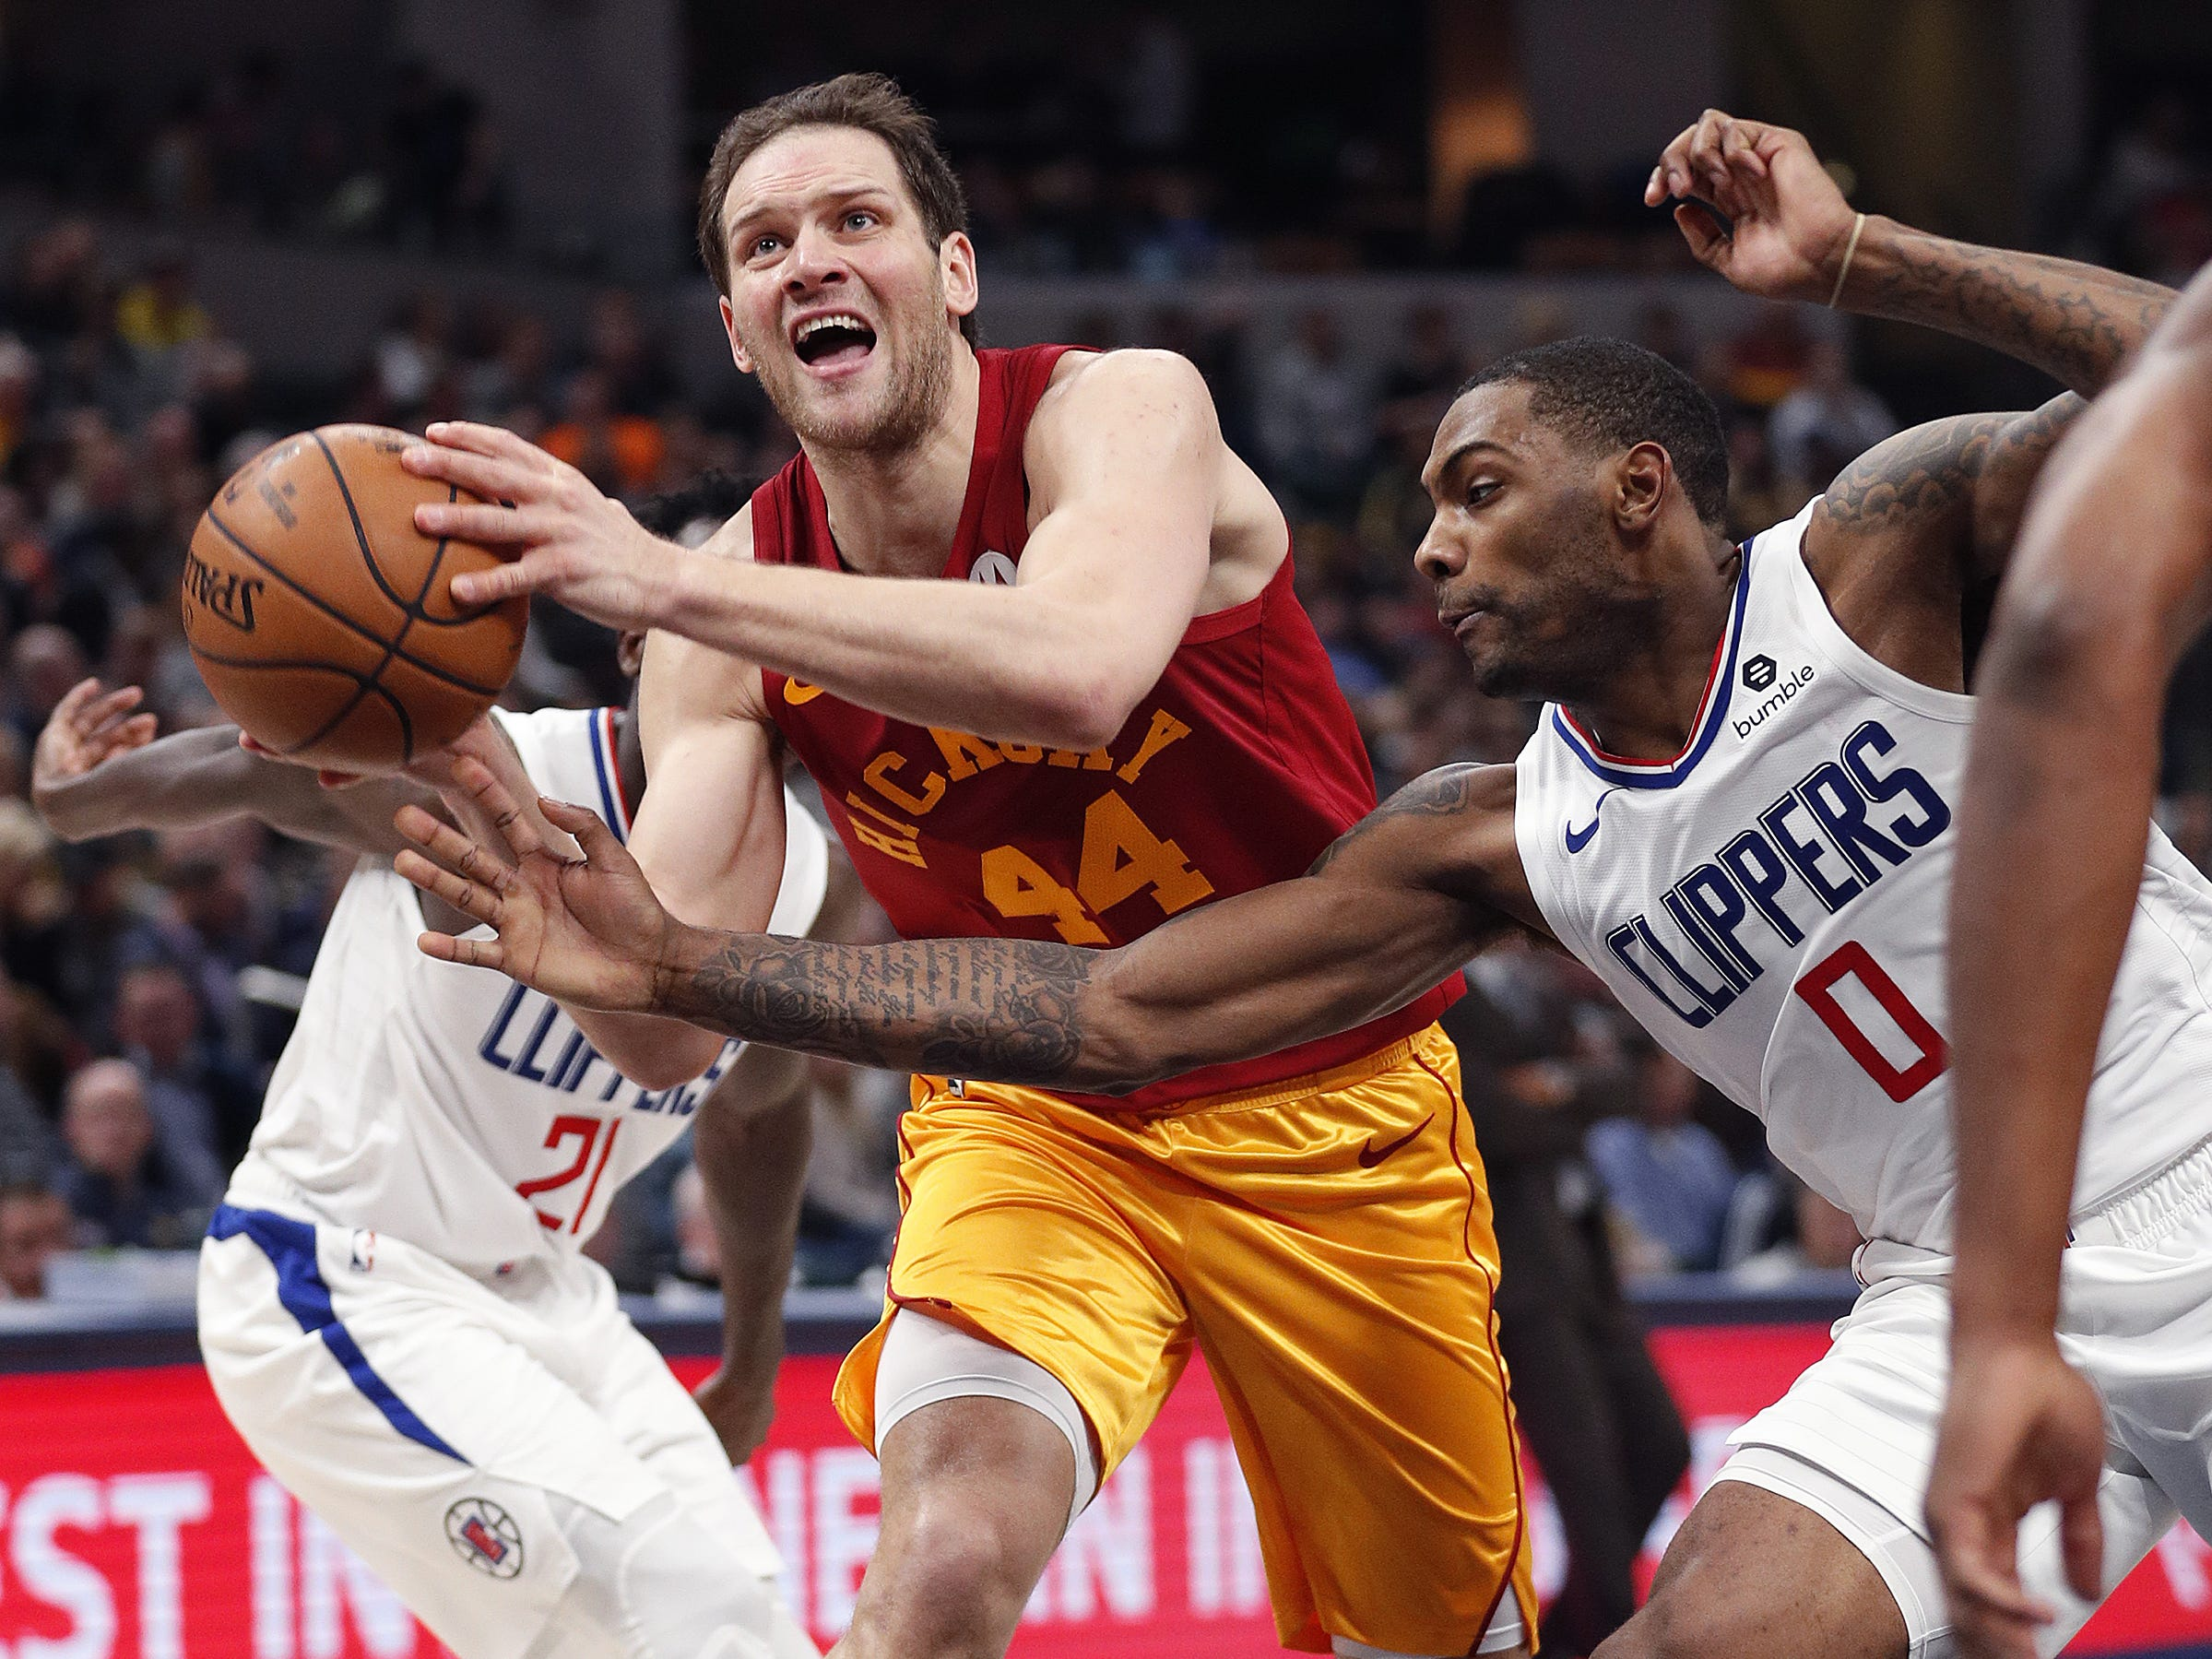 Pacers' options expand with Bojan Bogdanovic's growing role in offense